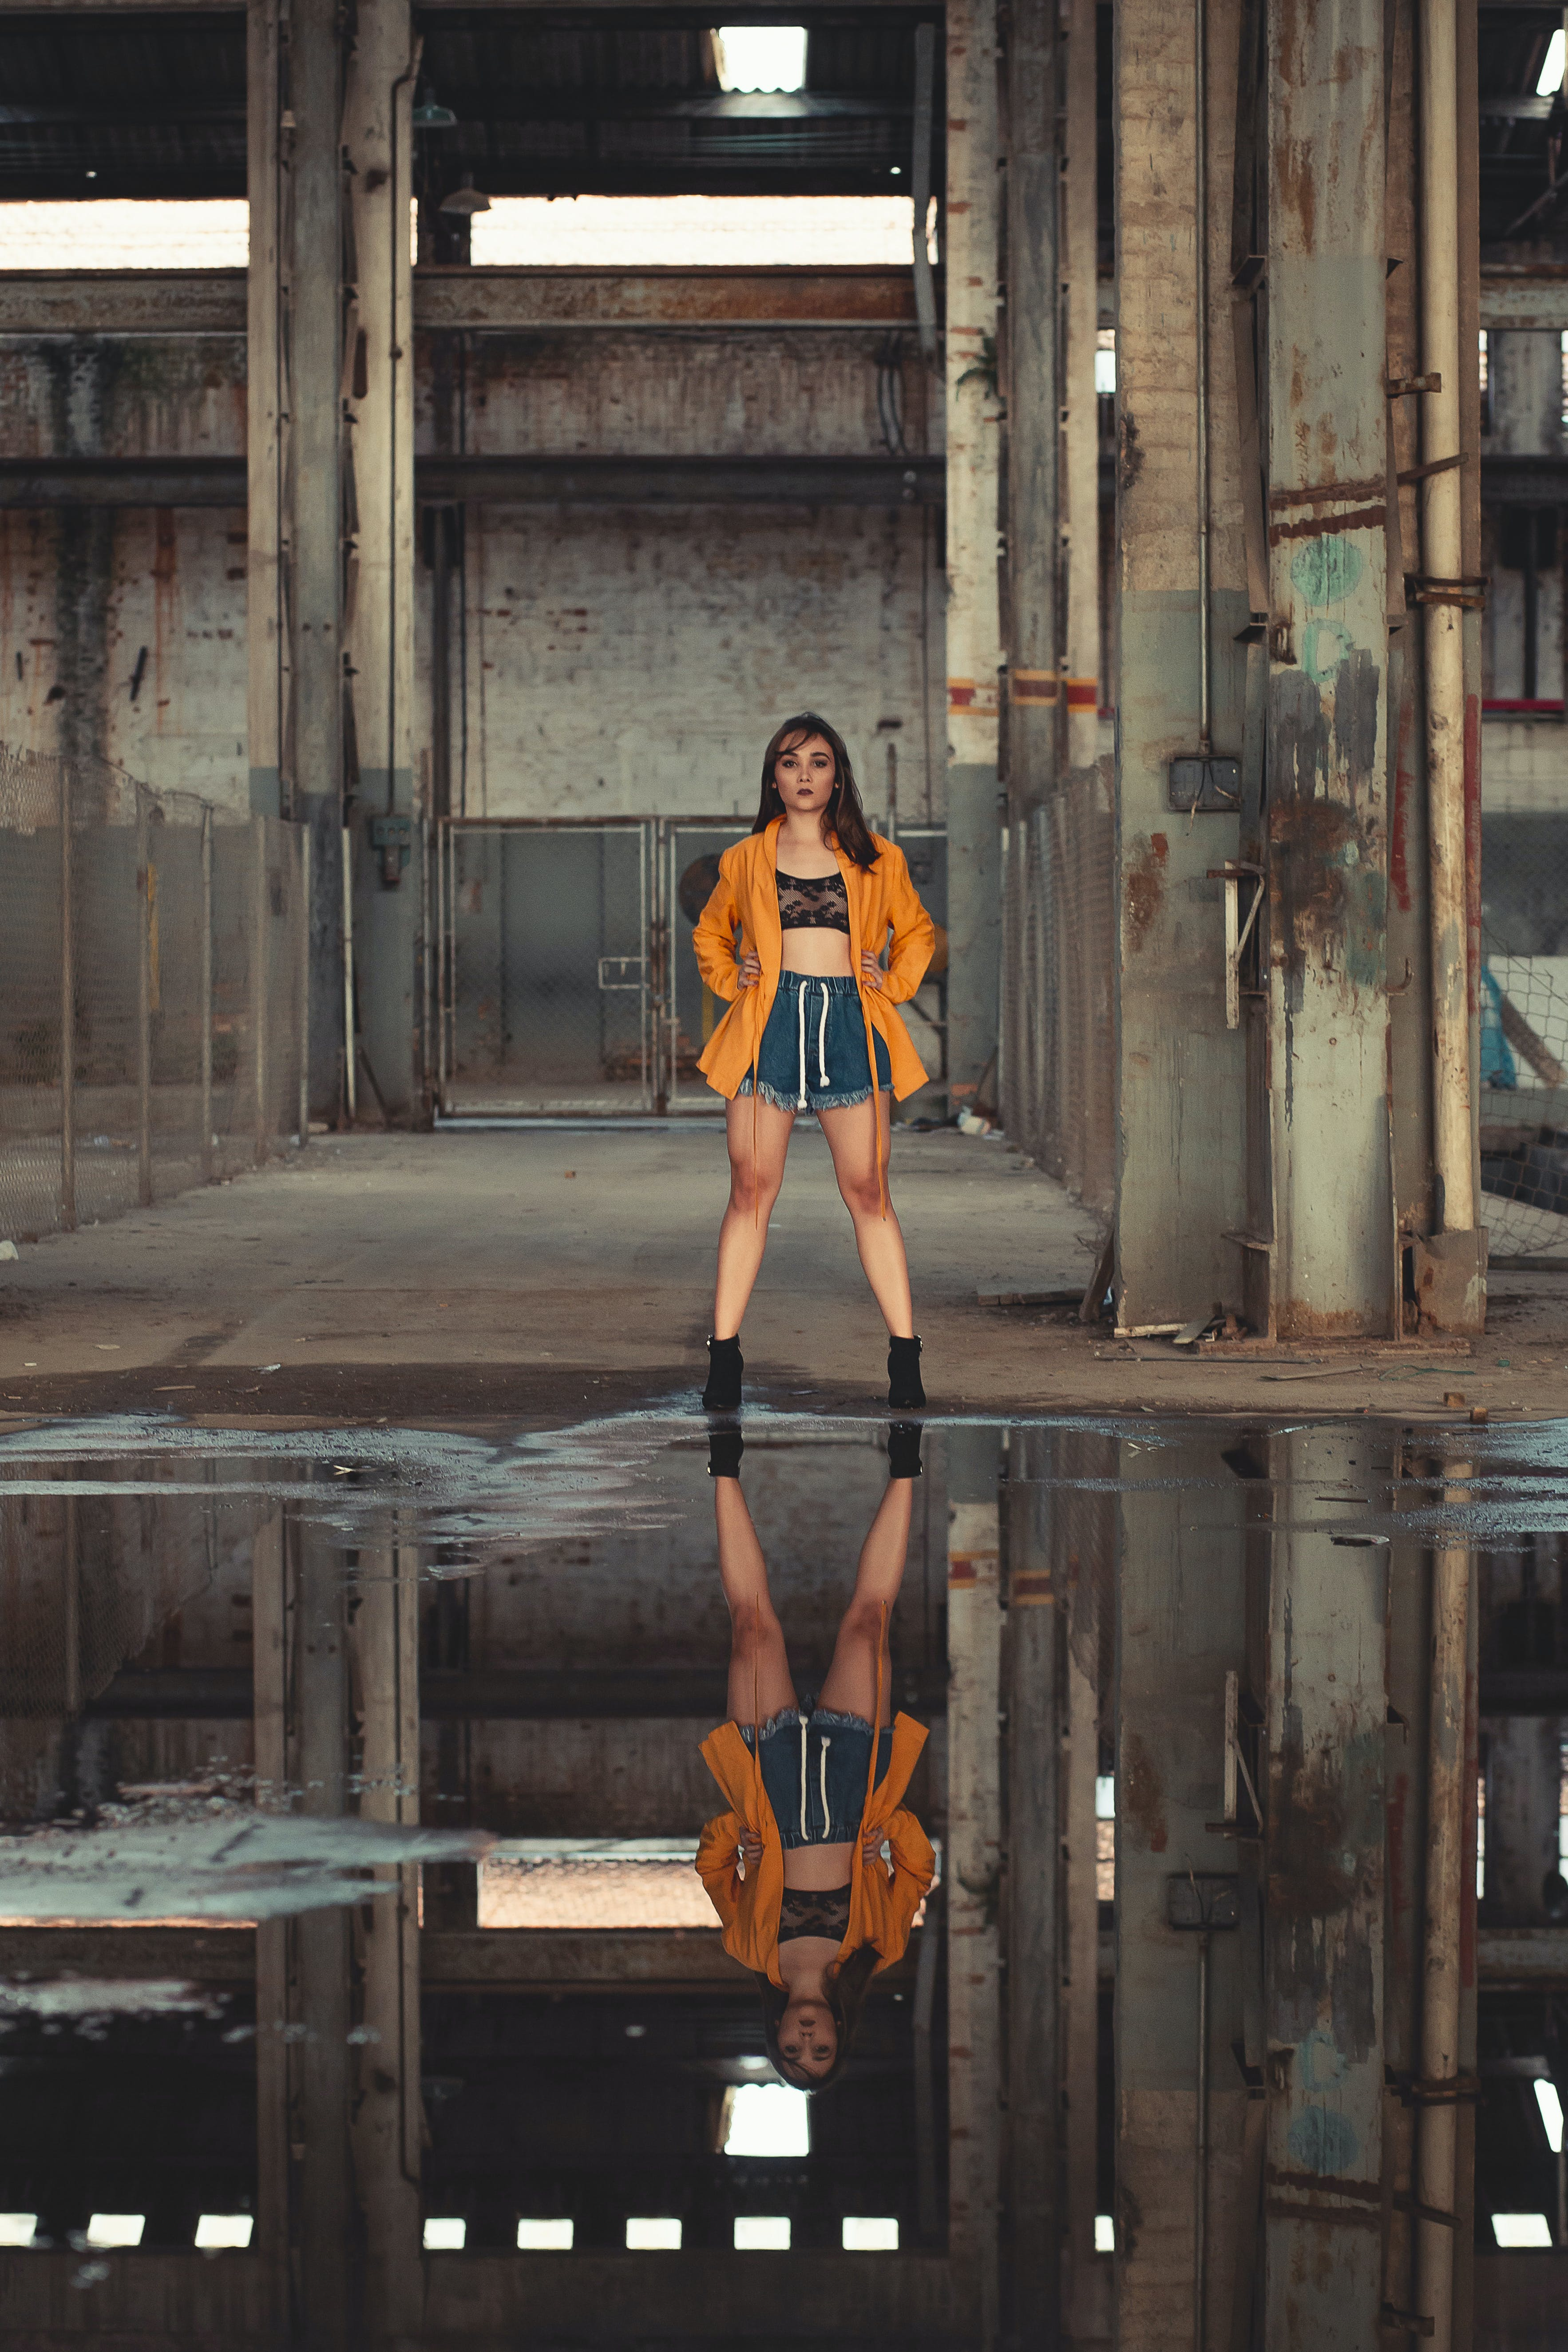 Woman in Orange Blazer Standing in Front of Water Puddle